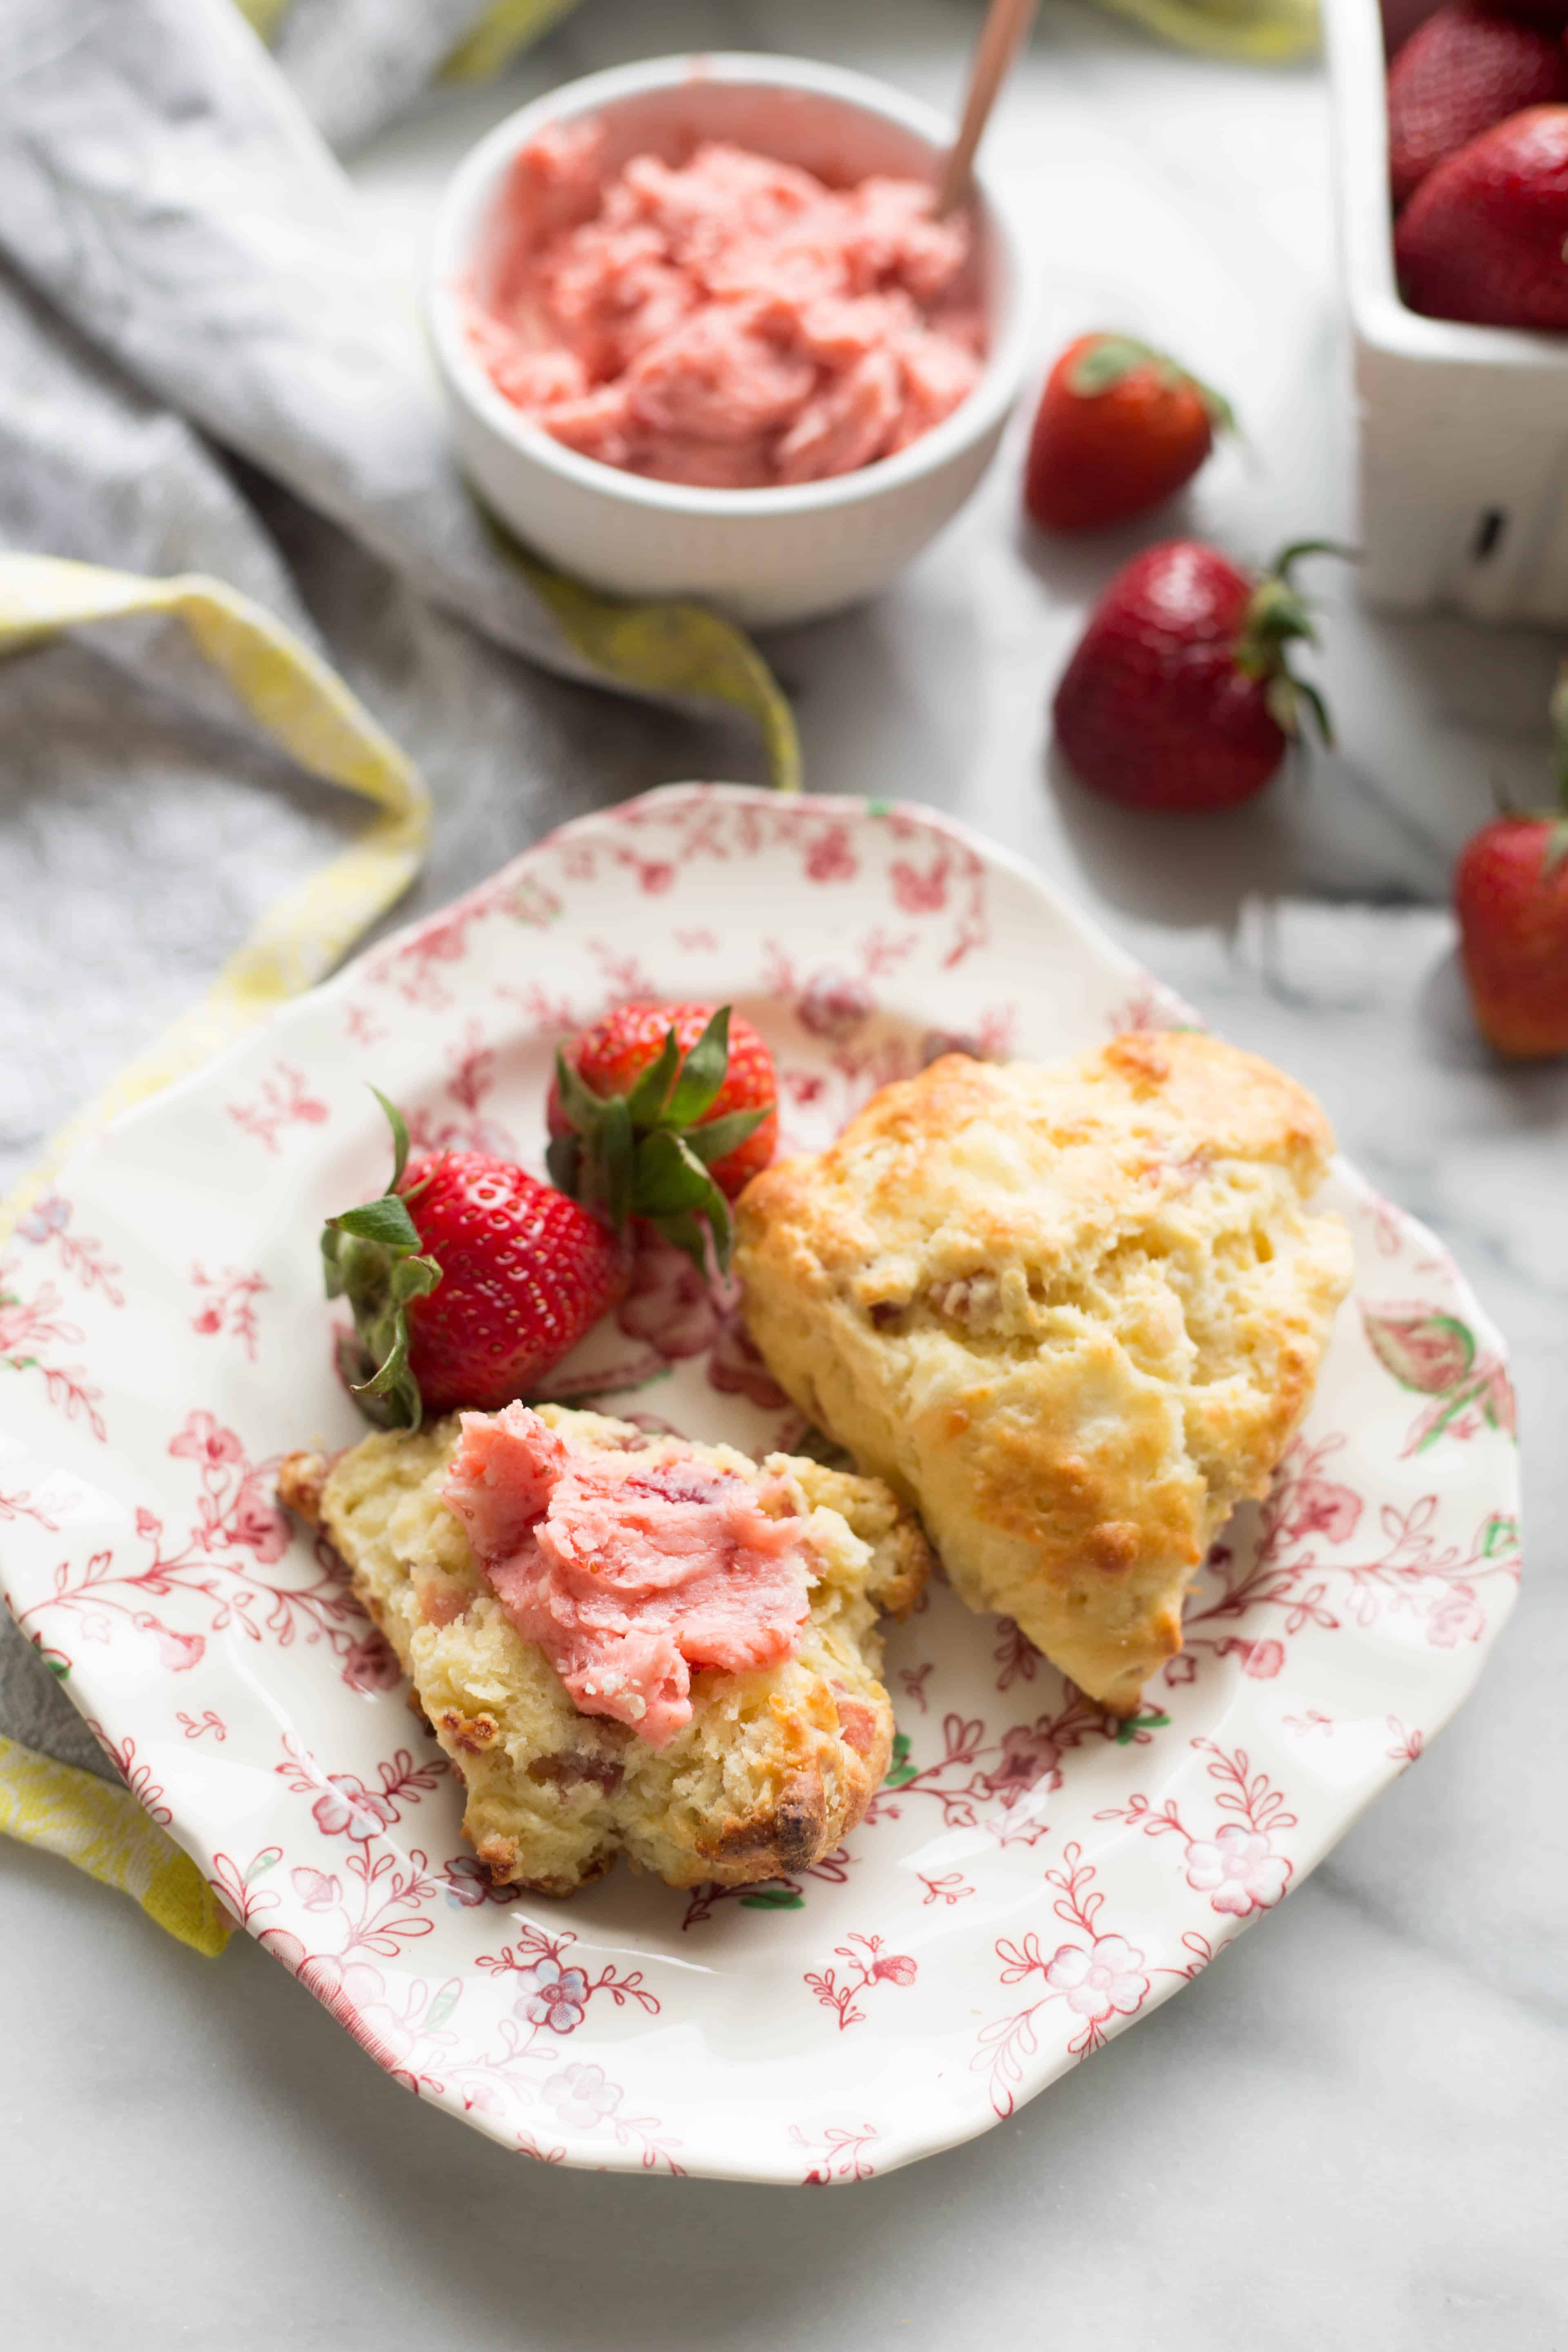 Square floral plate with two scones and fresh whole strawberries.